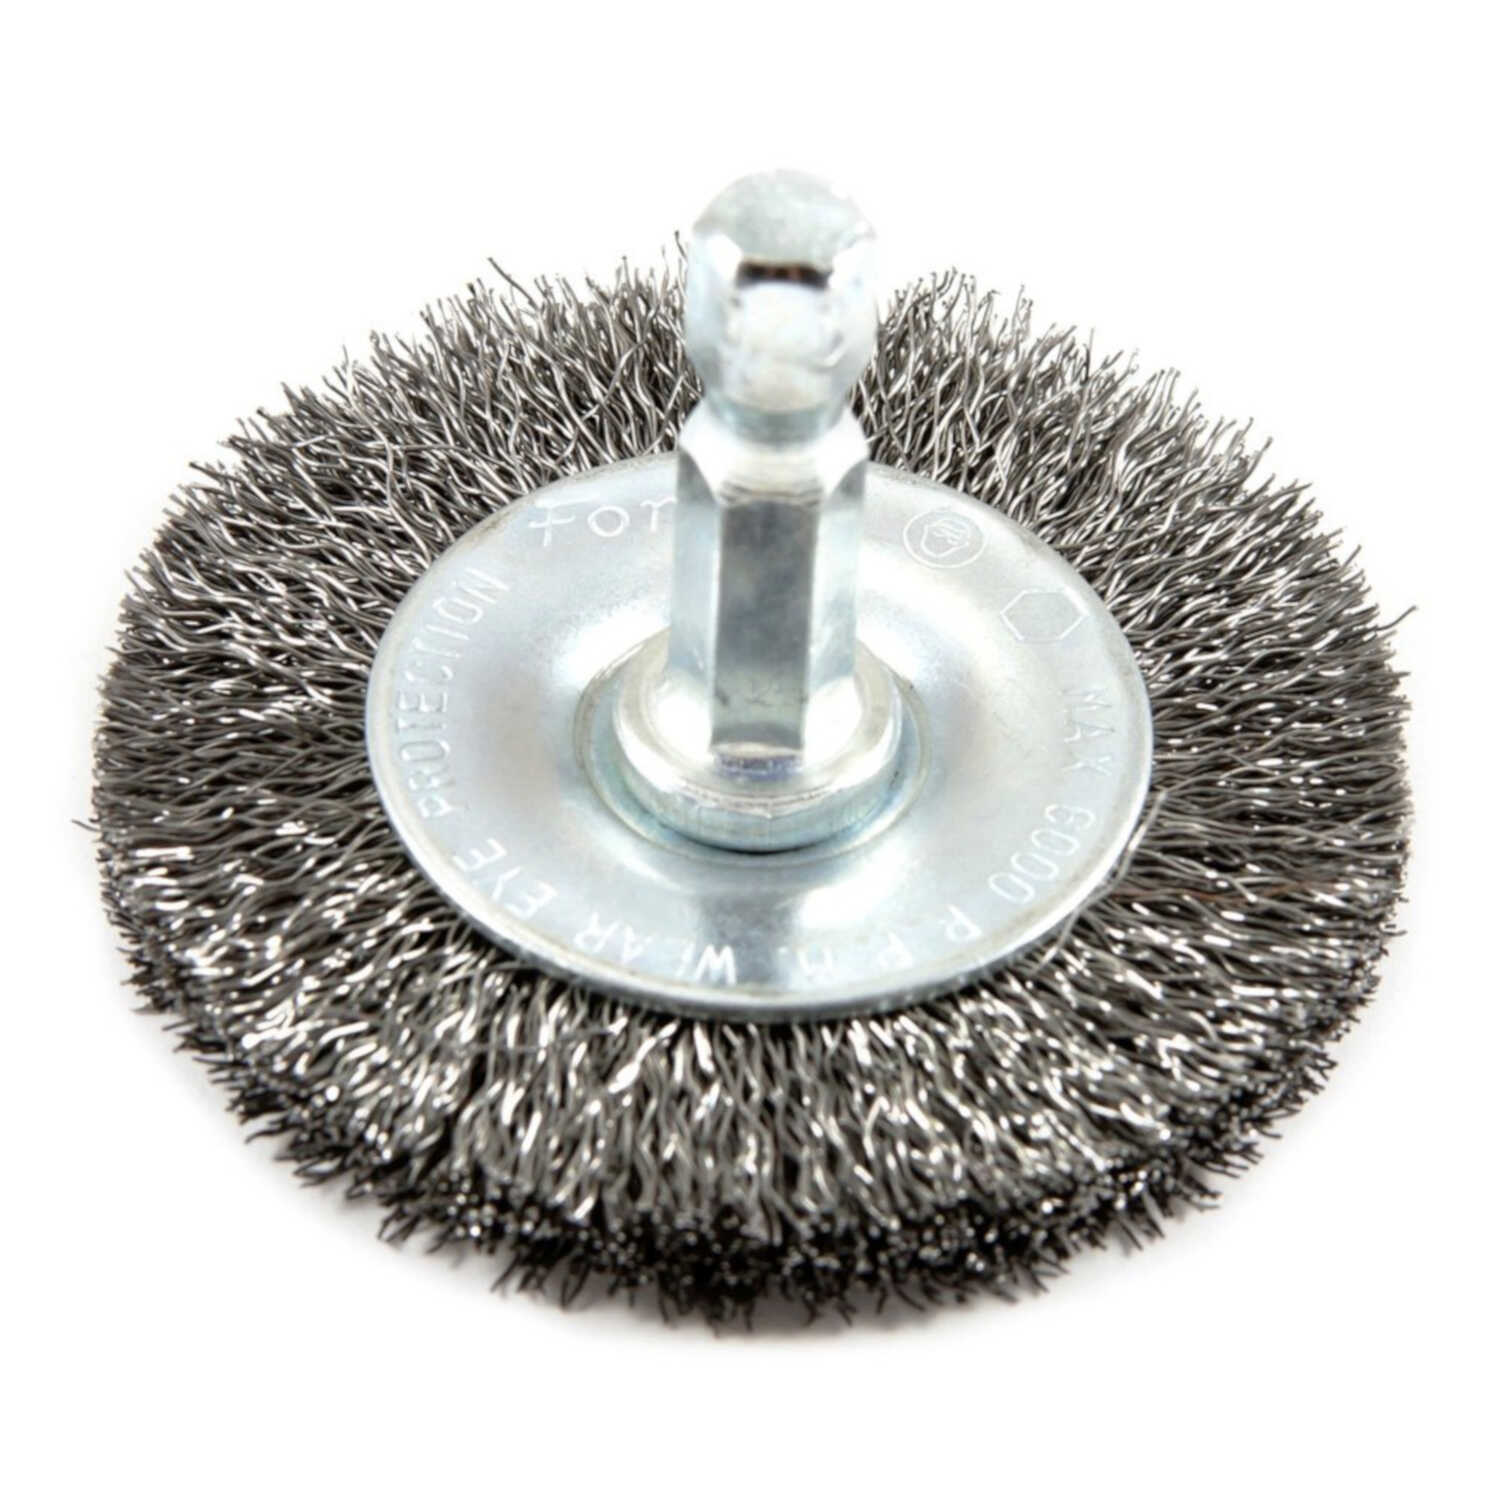 Forney  3 in. Wire Wheel Brush  Metal  6000 rpm 1 pc. Crimped